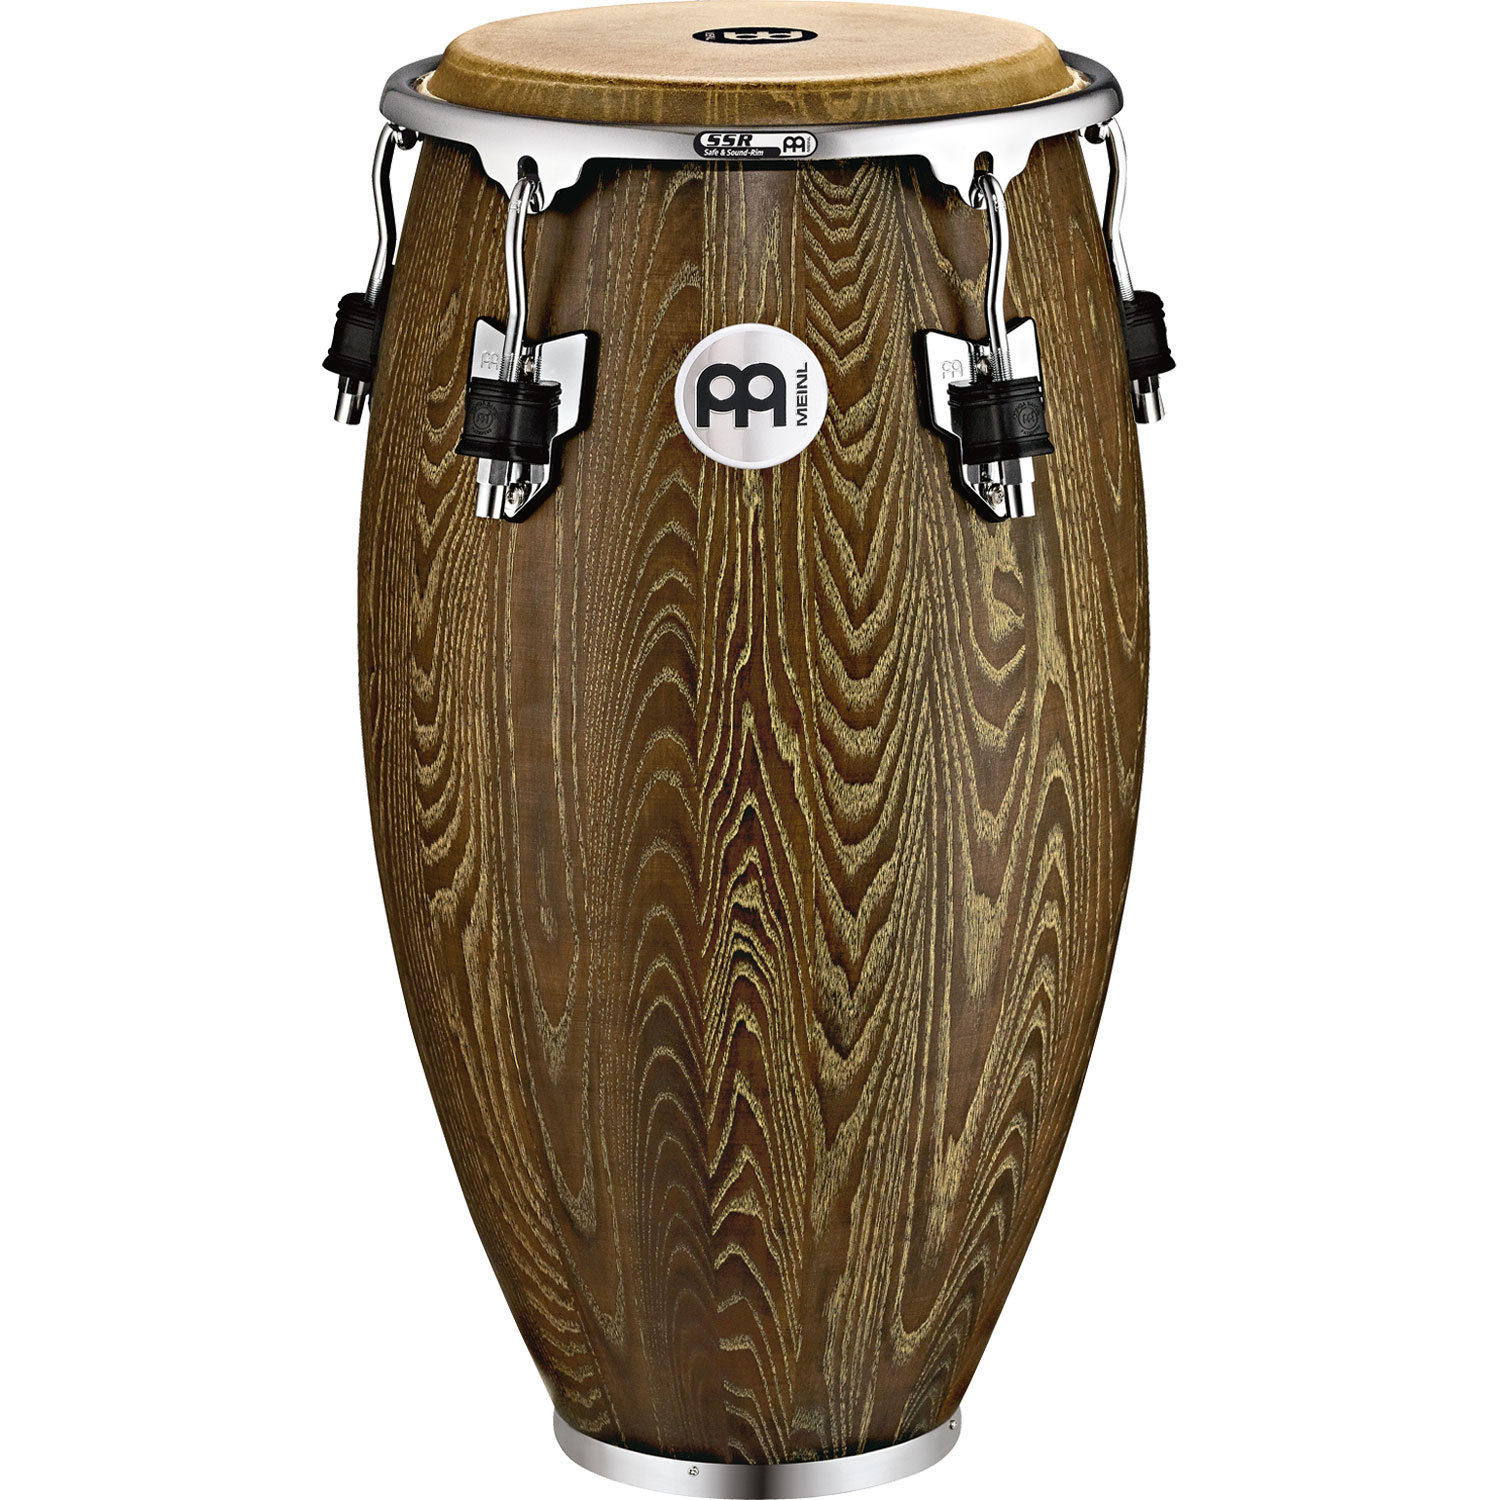 "Meinl 11"" Woodcraft Series Quinto Conga in Vintage Brown"